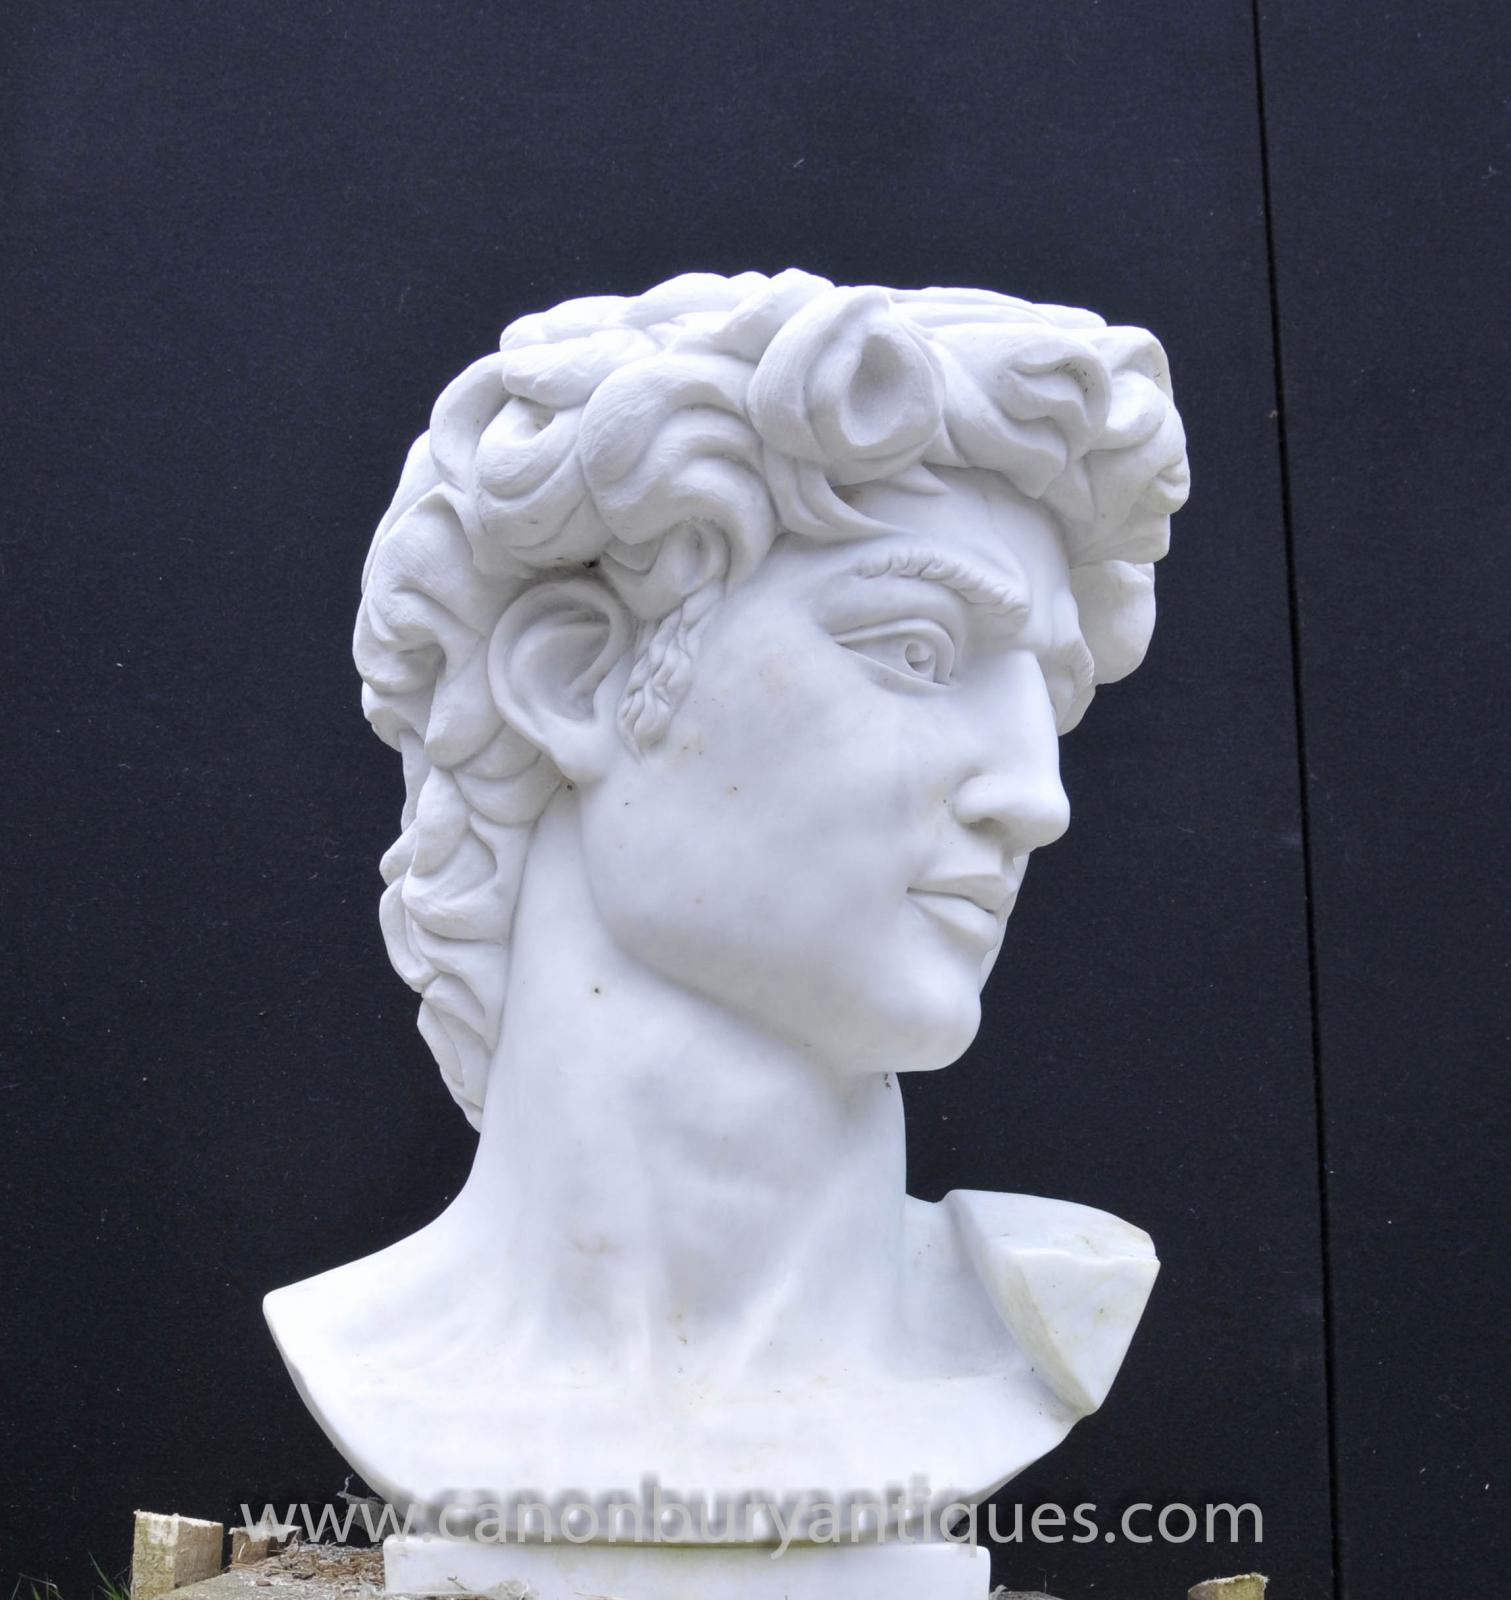 Good Looking Patio Vegetable Garden Ideas furthermore 53482P further Image Facades 1603097 besides Hand Carved Italian Marble Bust Apollo Delphi Greek God Myth 1414428841 besides Mahogany Presidents Resolute Desk Partners And Chair Set 1317941636. on french art deco garden furniture